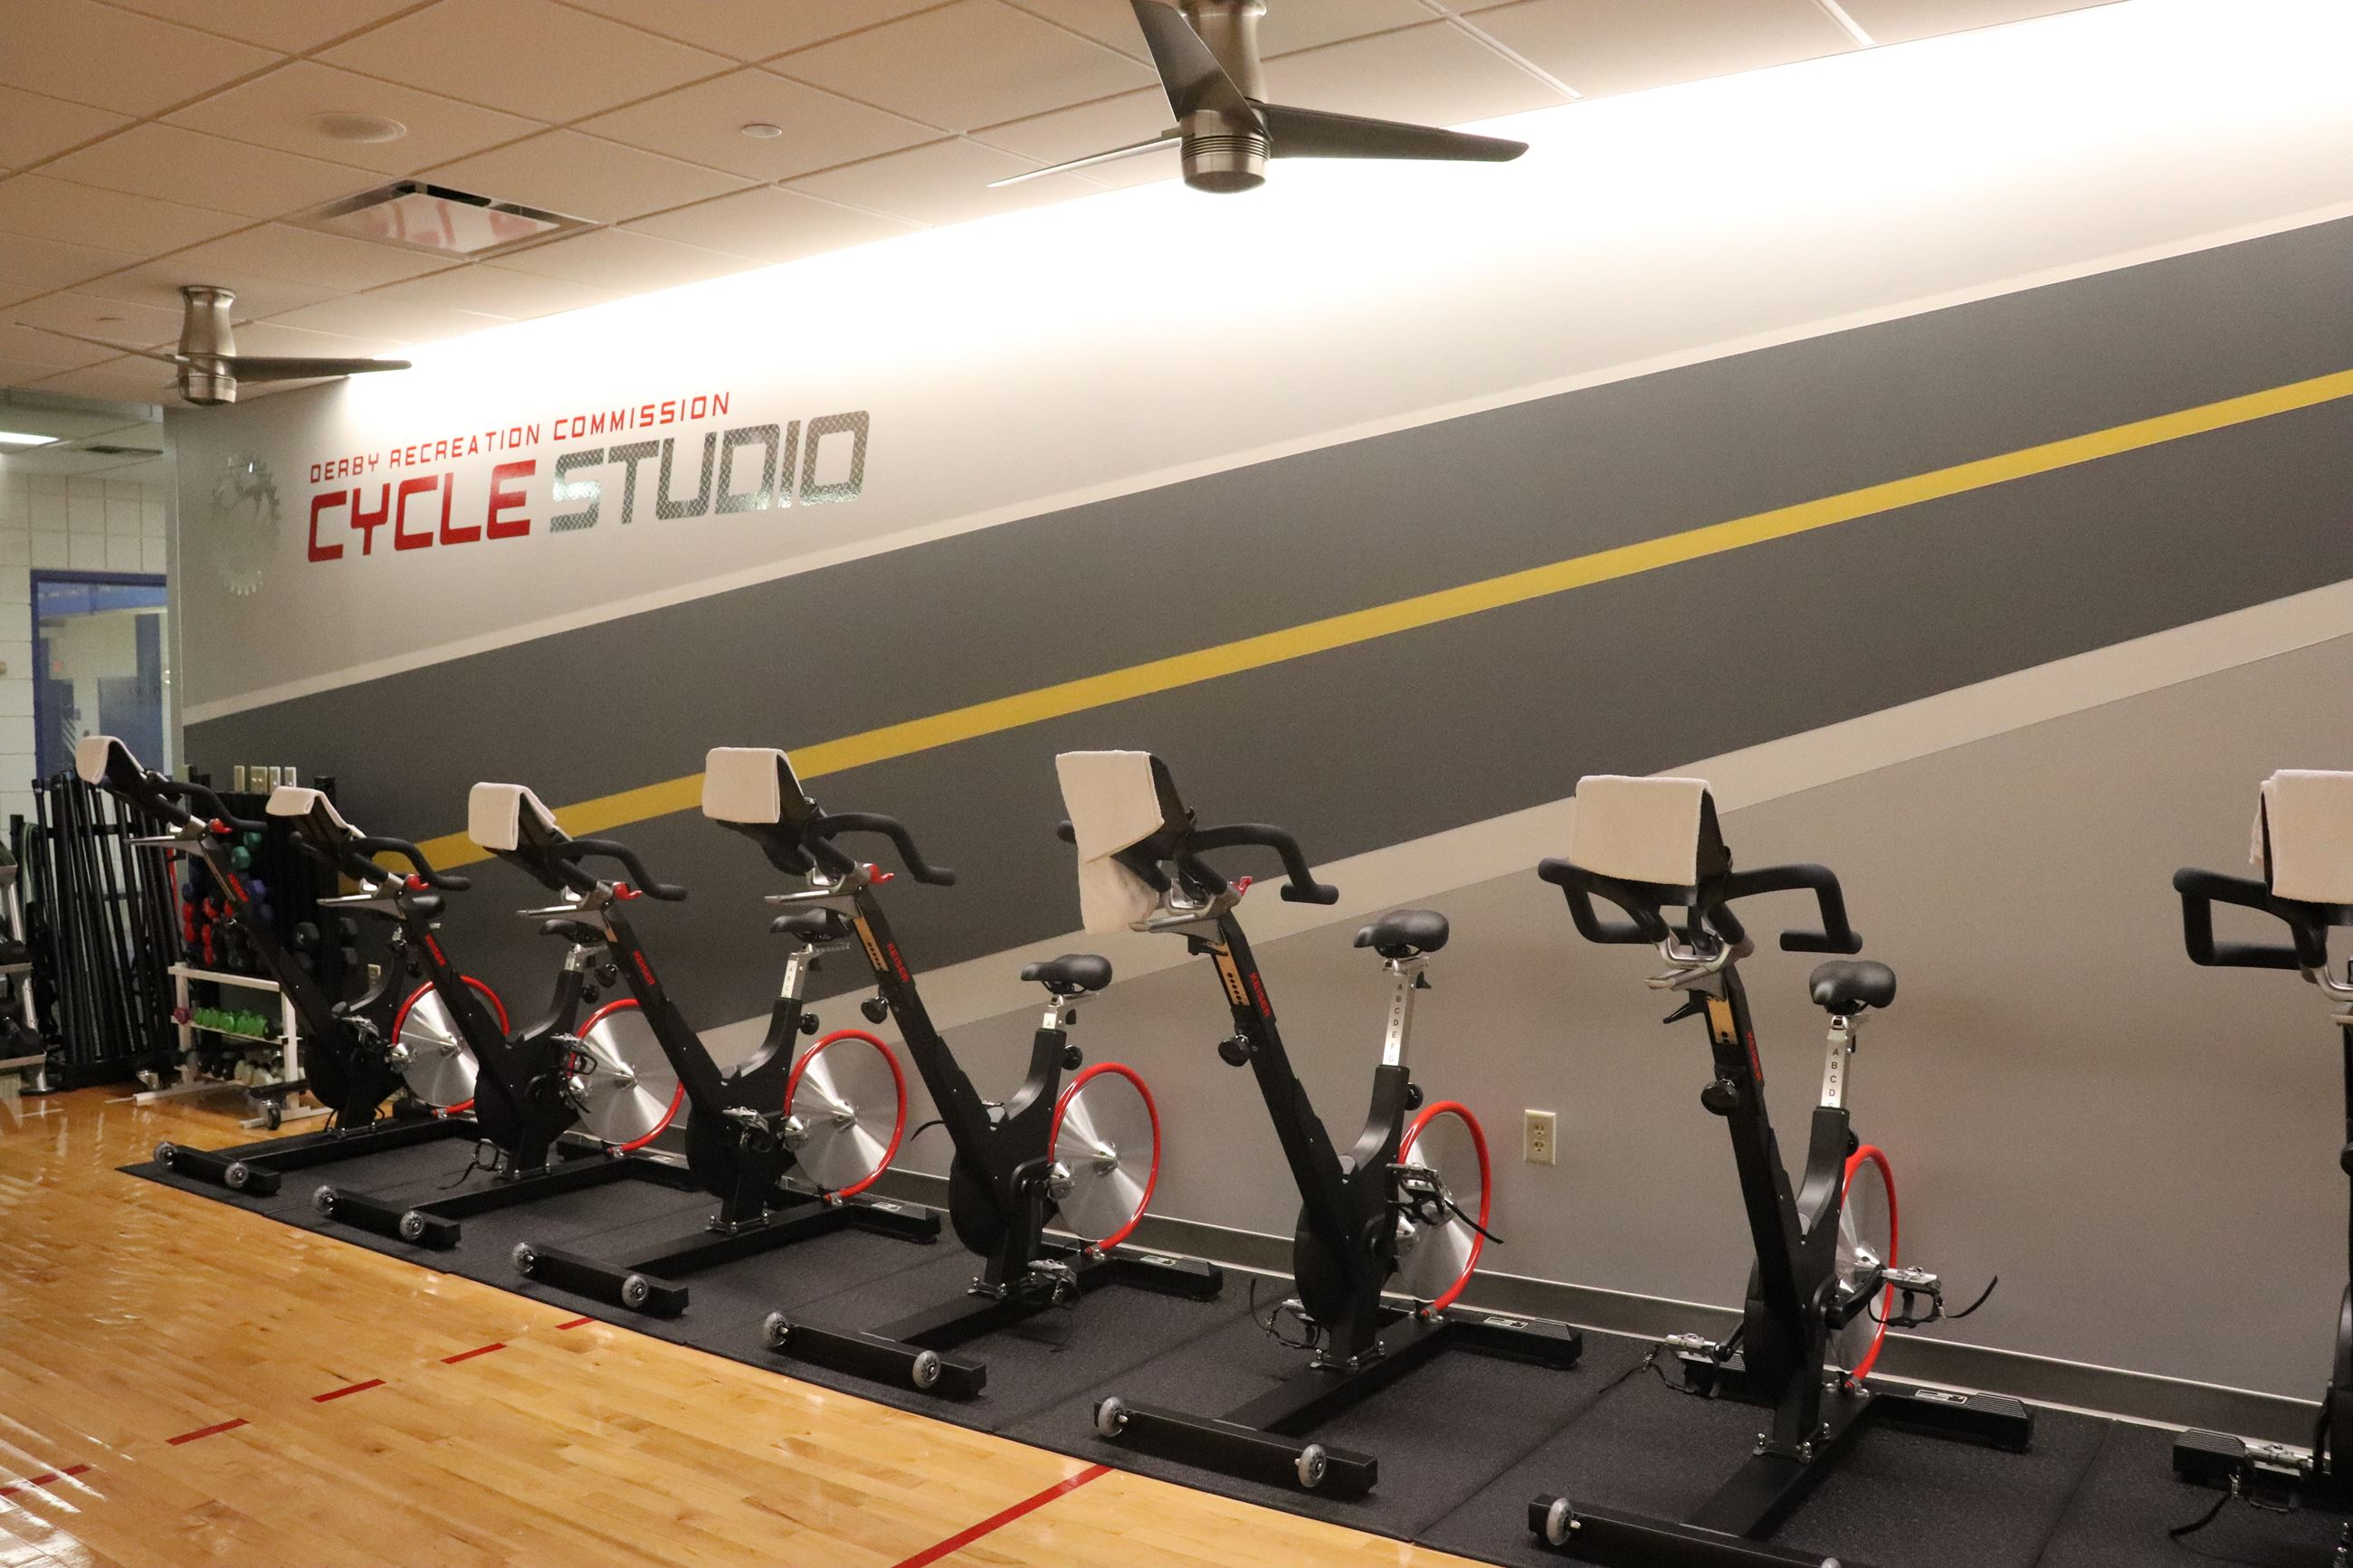 CYCLE STUDIO 1